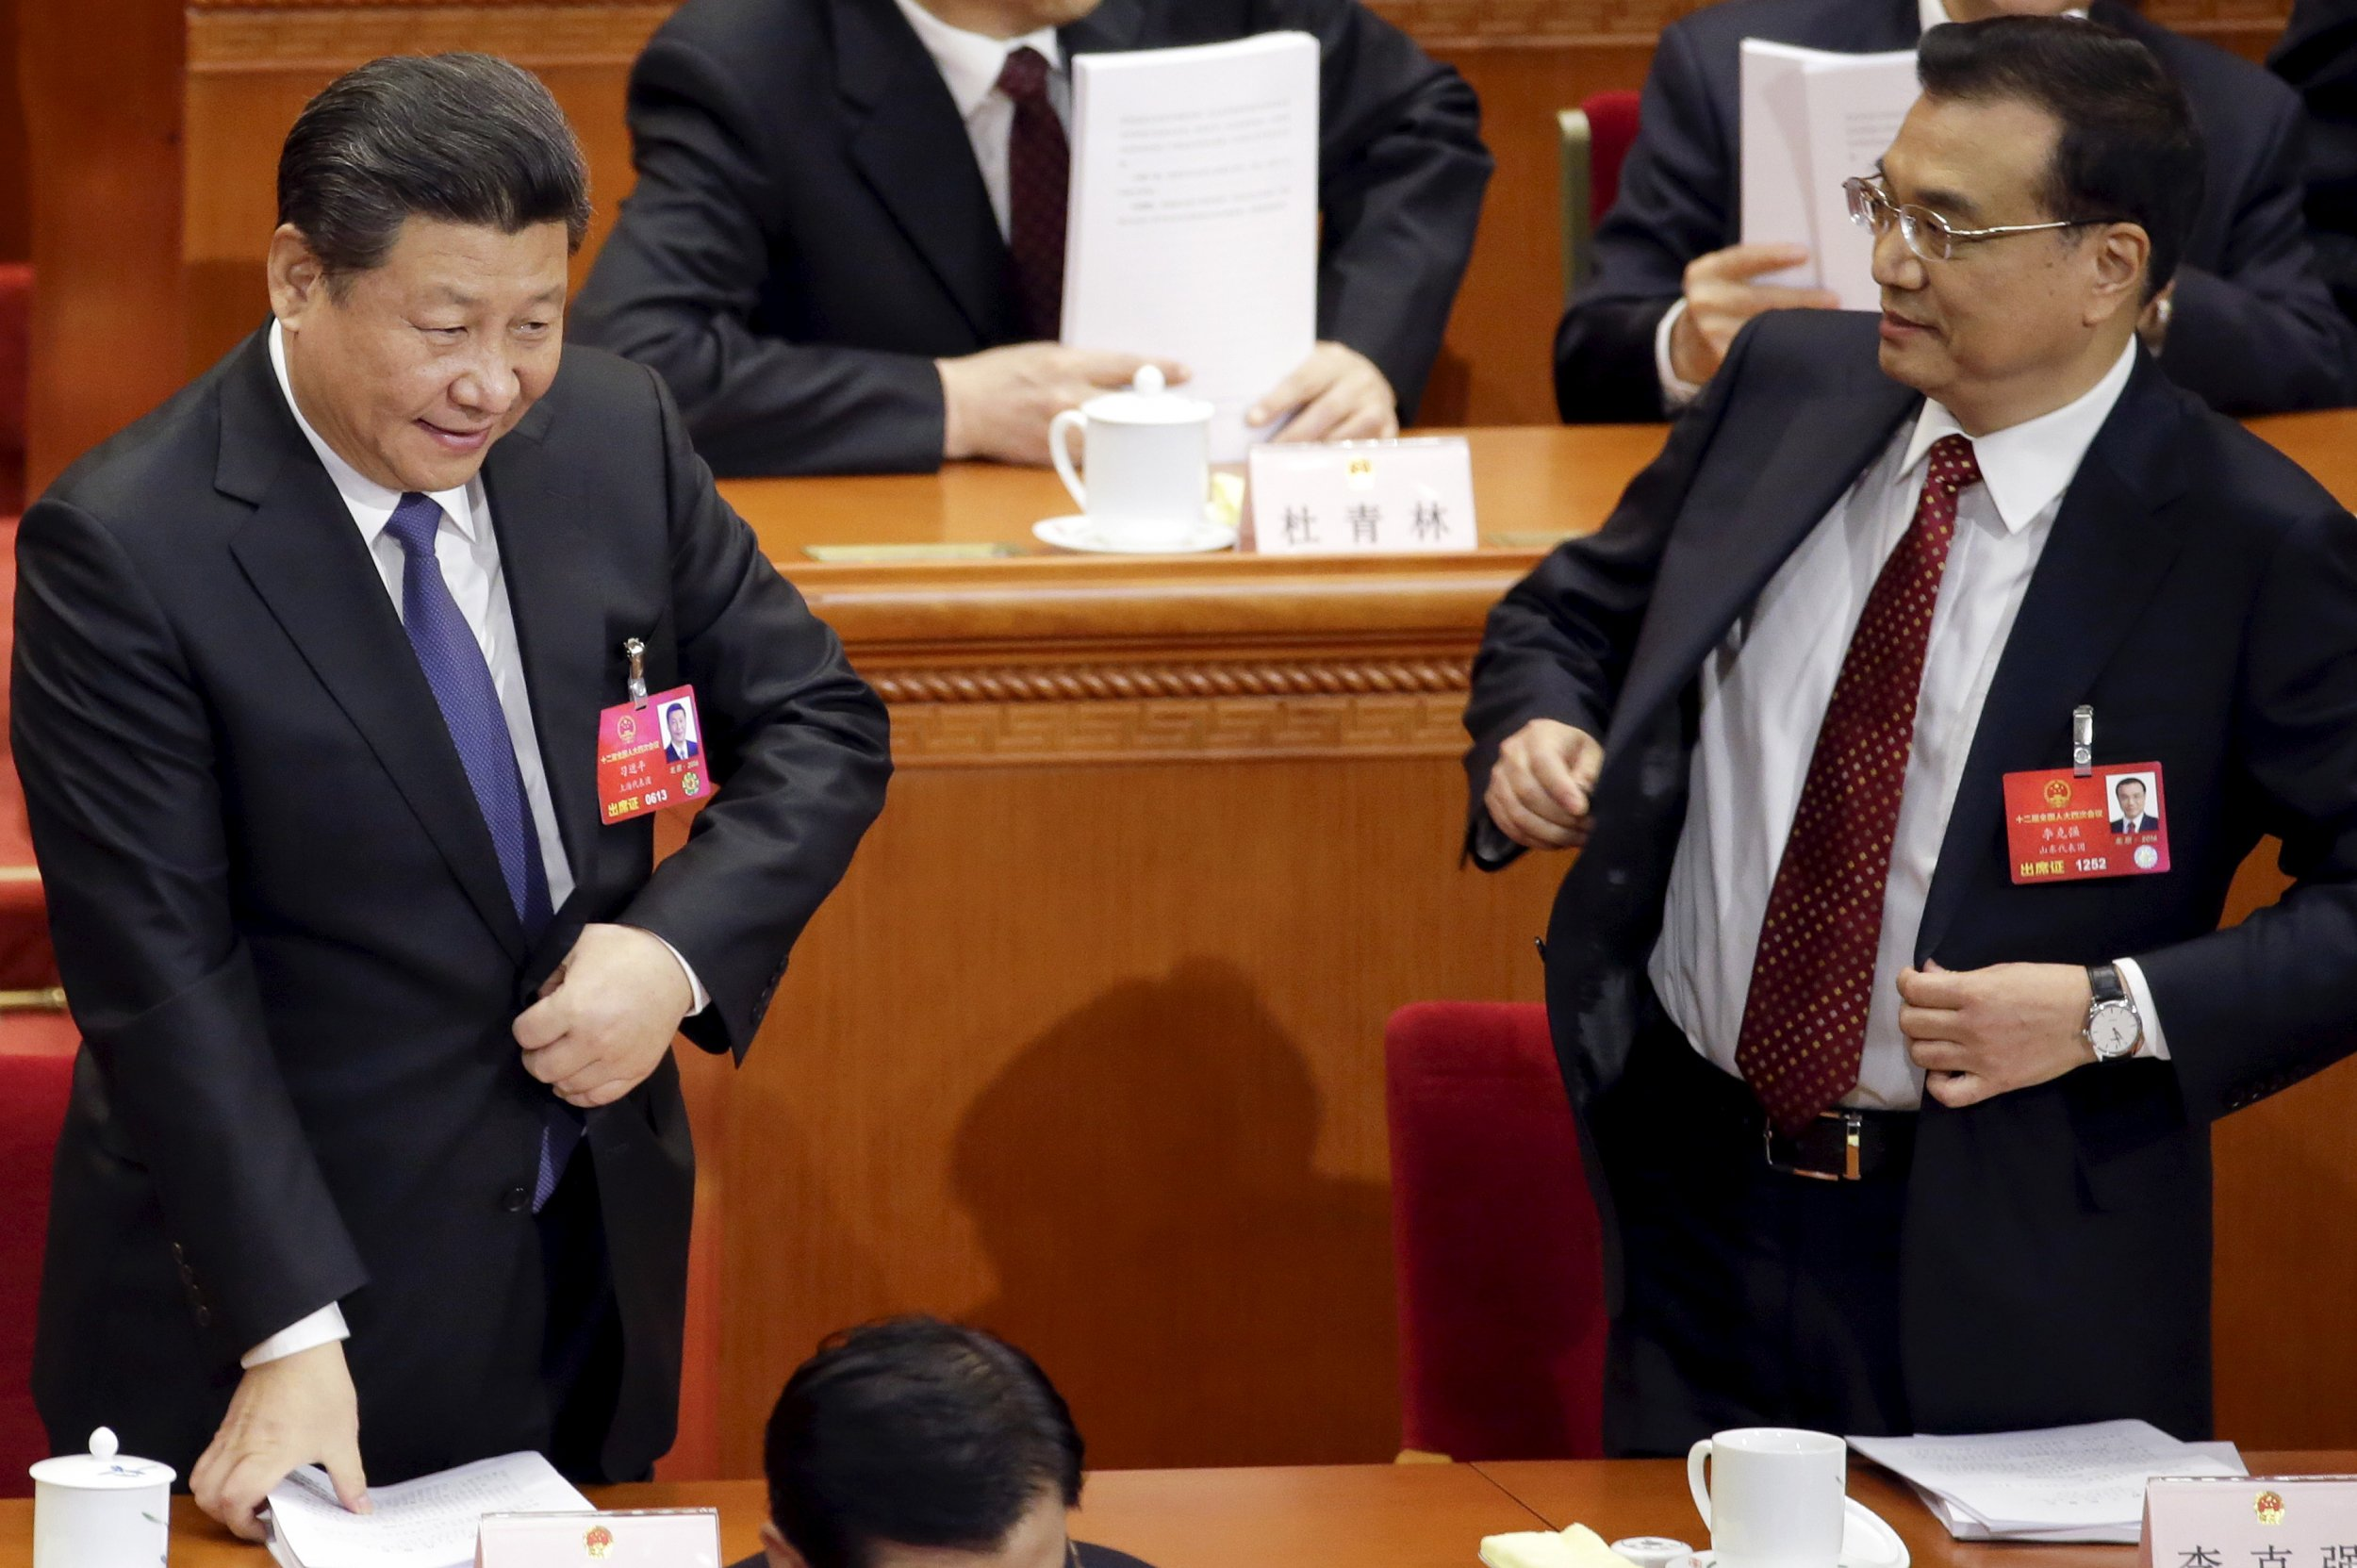 China Xi Jinping and Li Keqiang